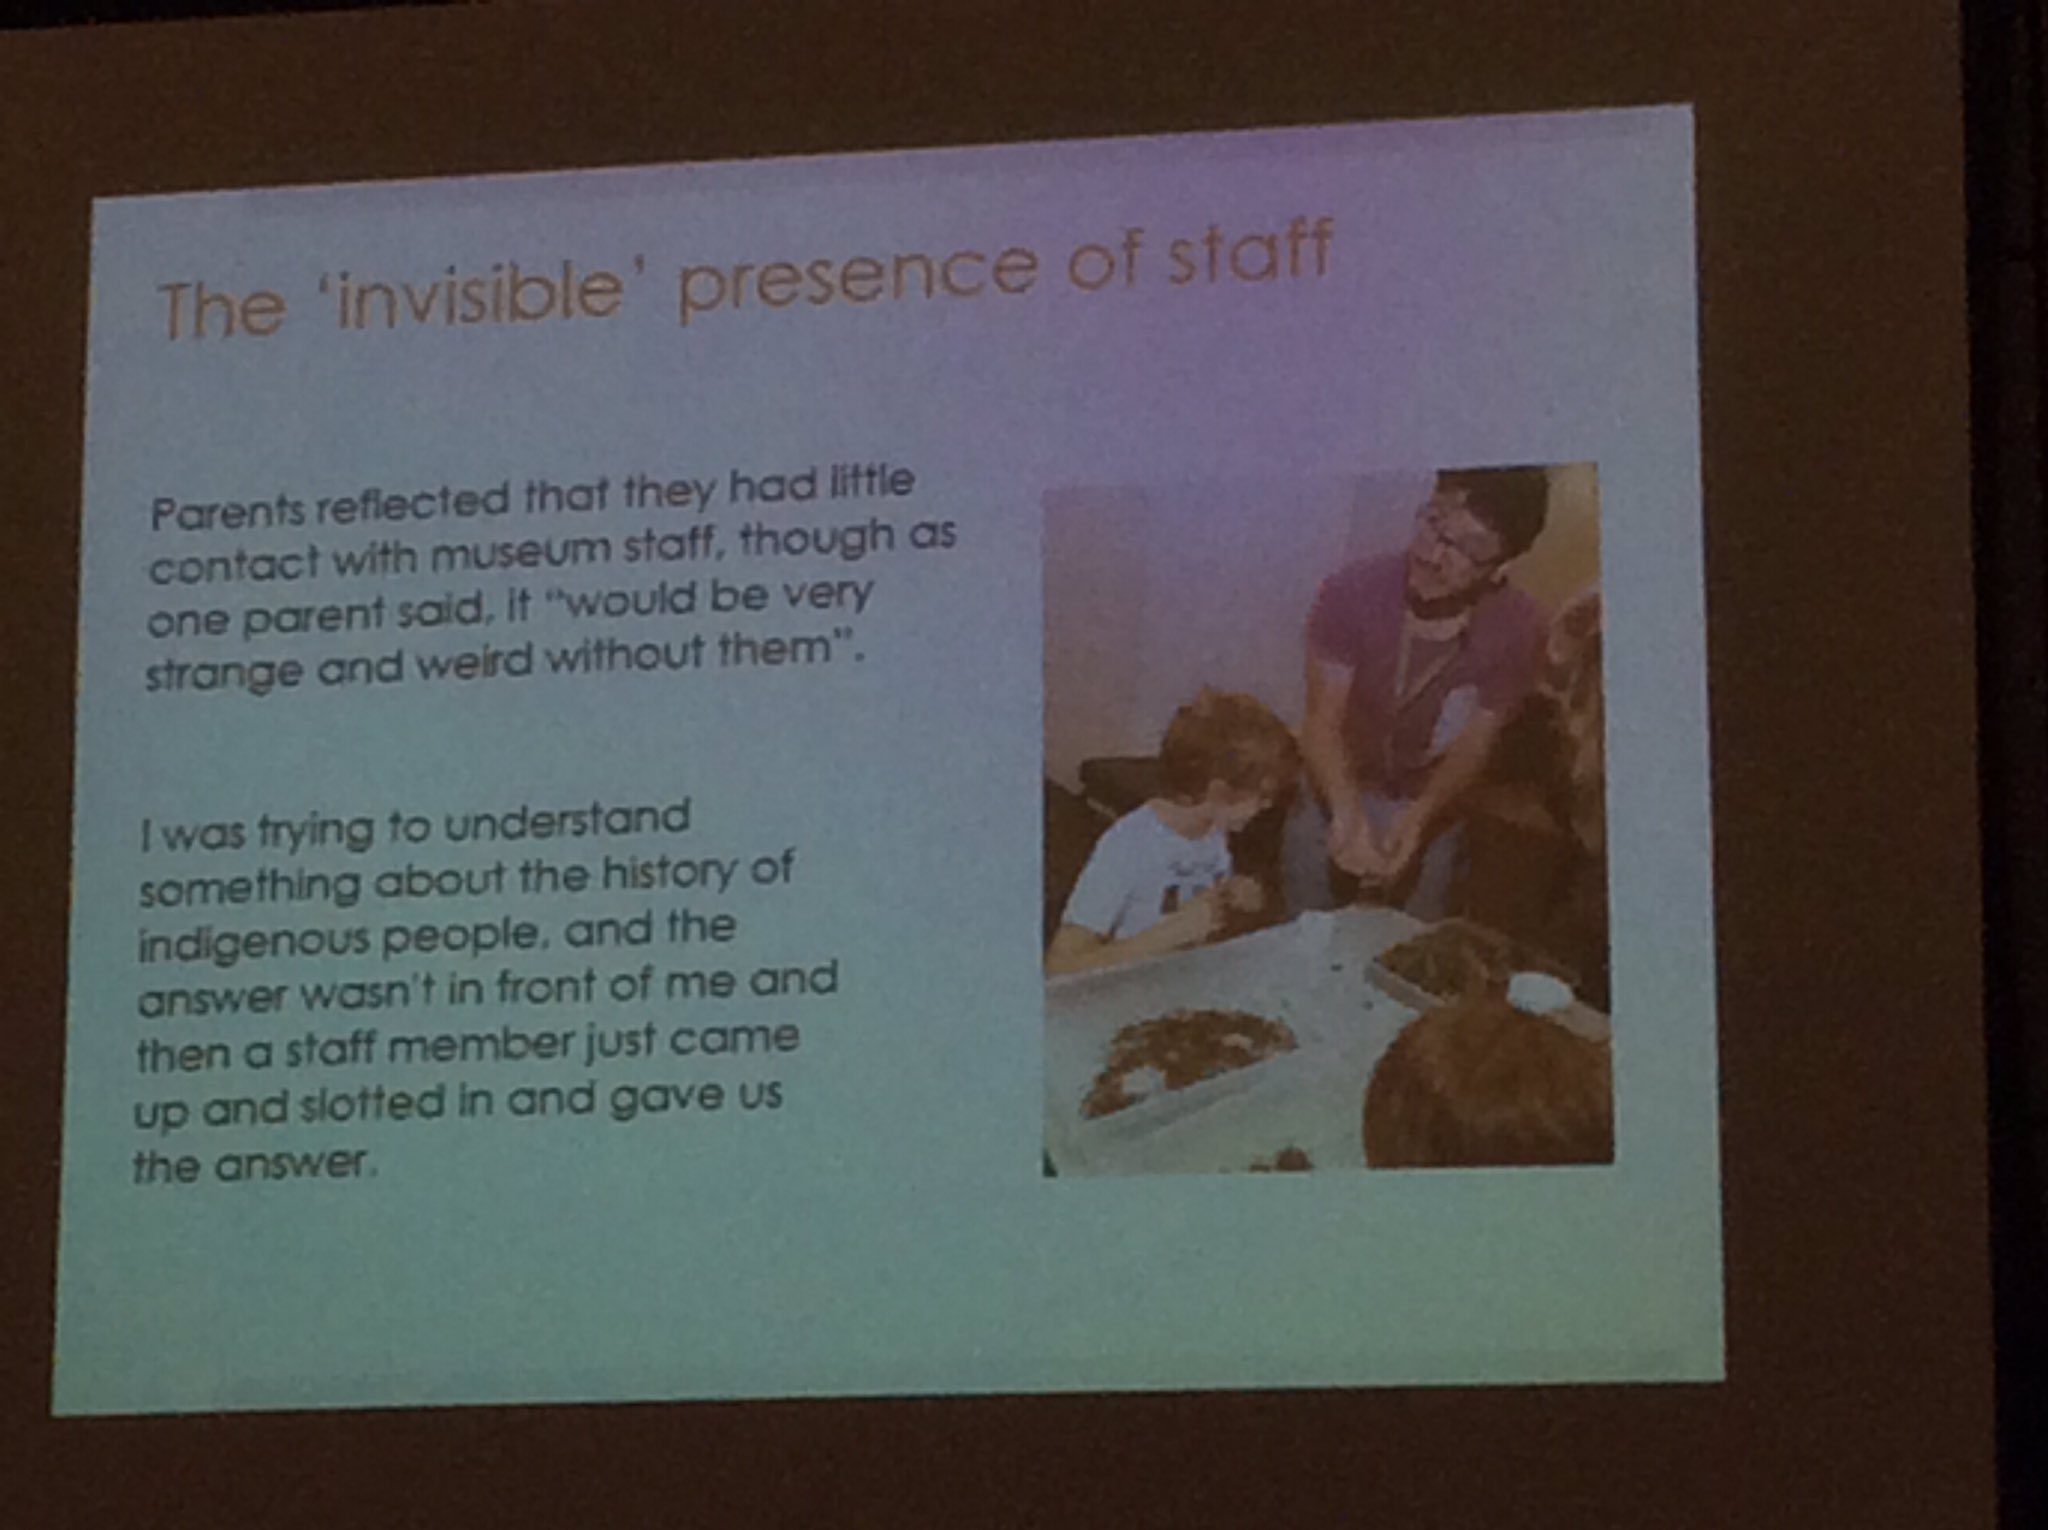 The invisible presence of #museum staff  #VRF17 https://t.co/CwdssrTOMb